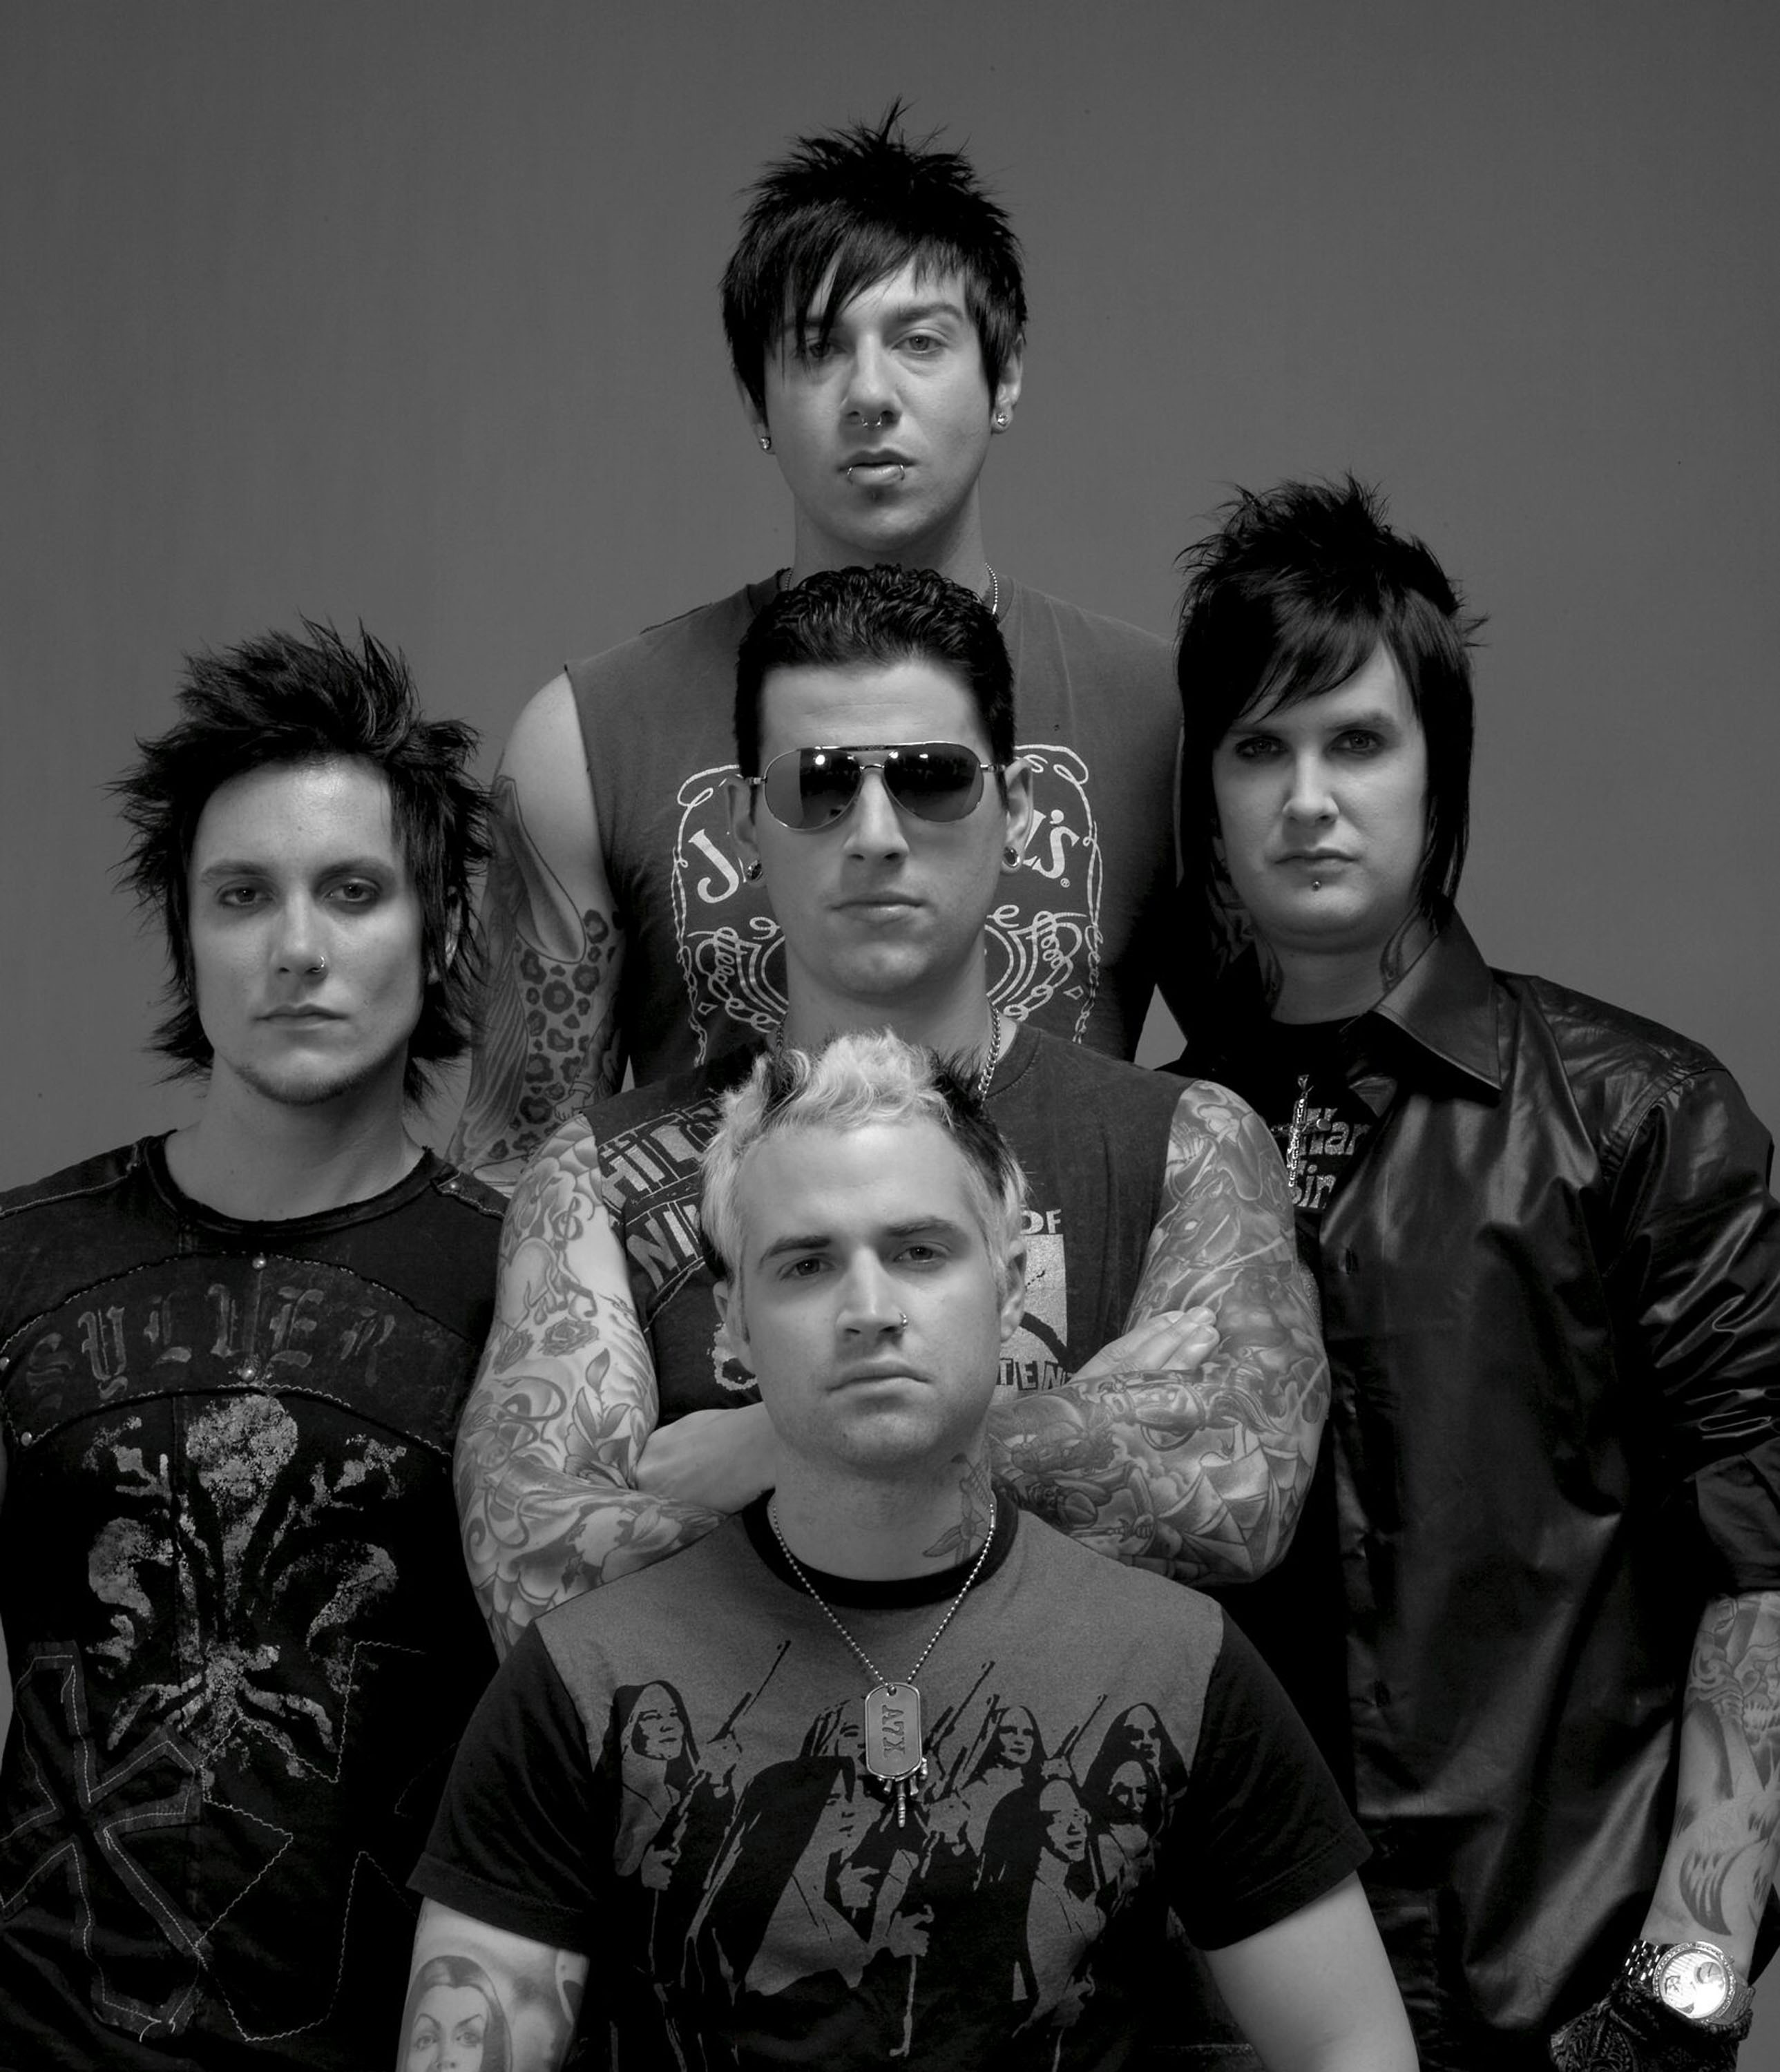 Avenged Sevenfold - Avenged Sevenfold - Amazon.com Music